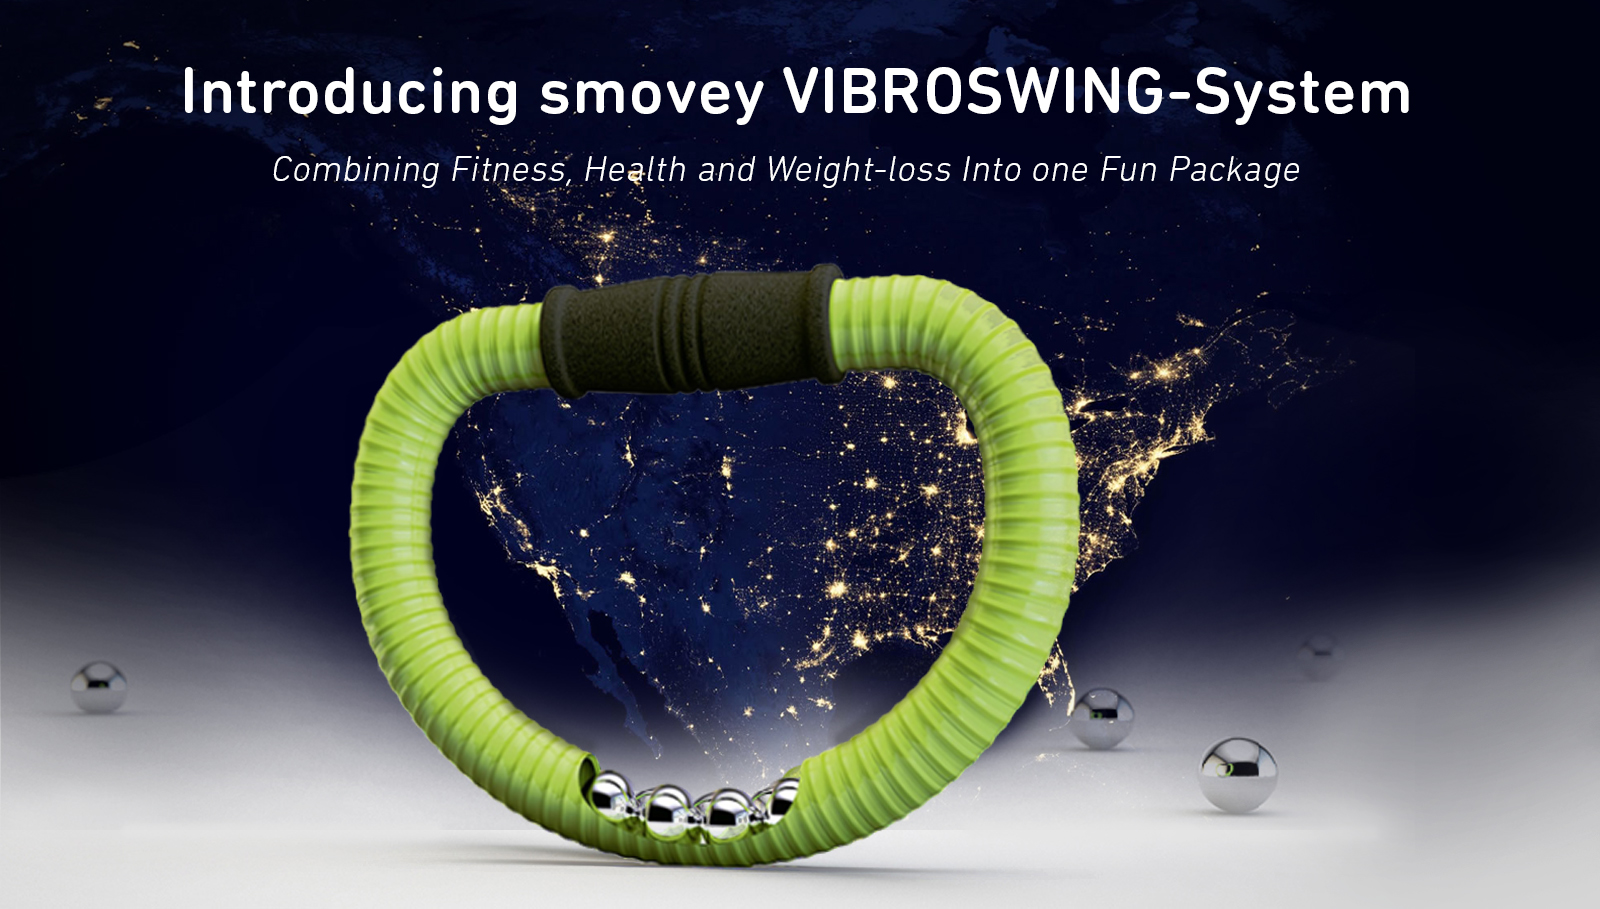 Introducing smovey VIBROSWING-System- Combining fitness, health and weight loss into a fun package!